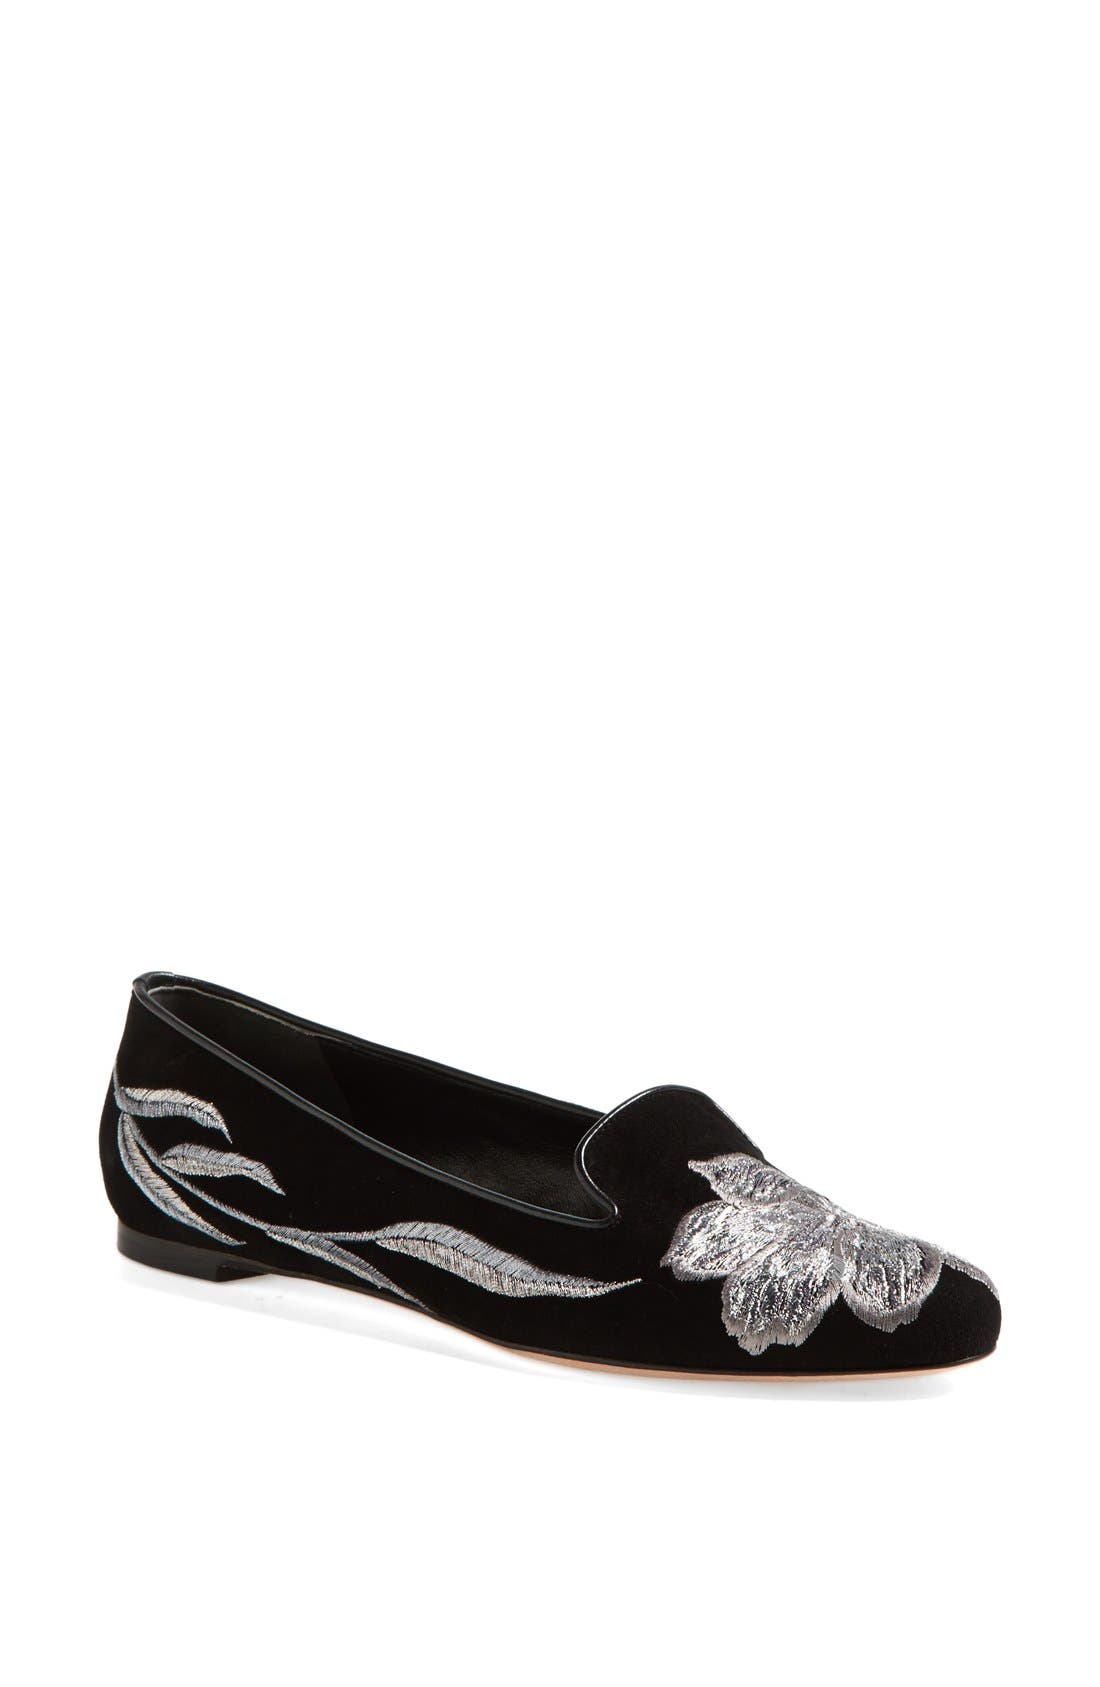 Alternate Image 1 Selected - Alexander McQueen Tulip Embroidered Suede Smoking Flat (Women)